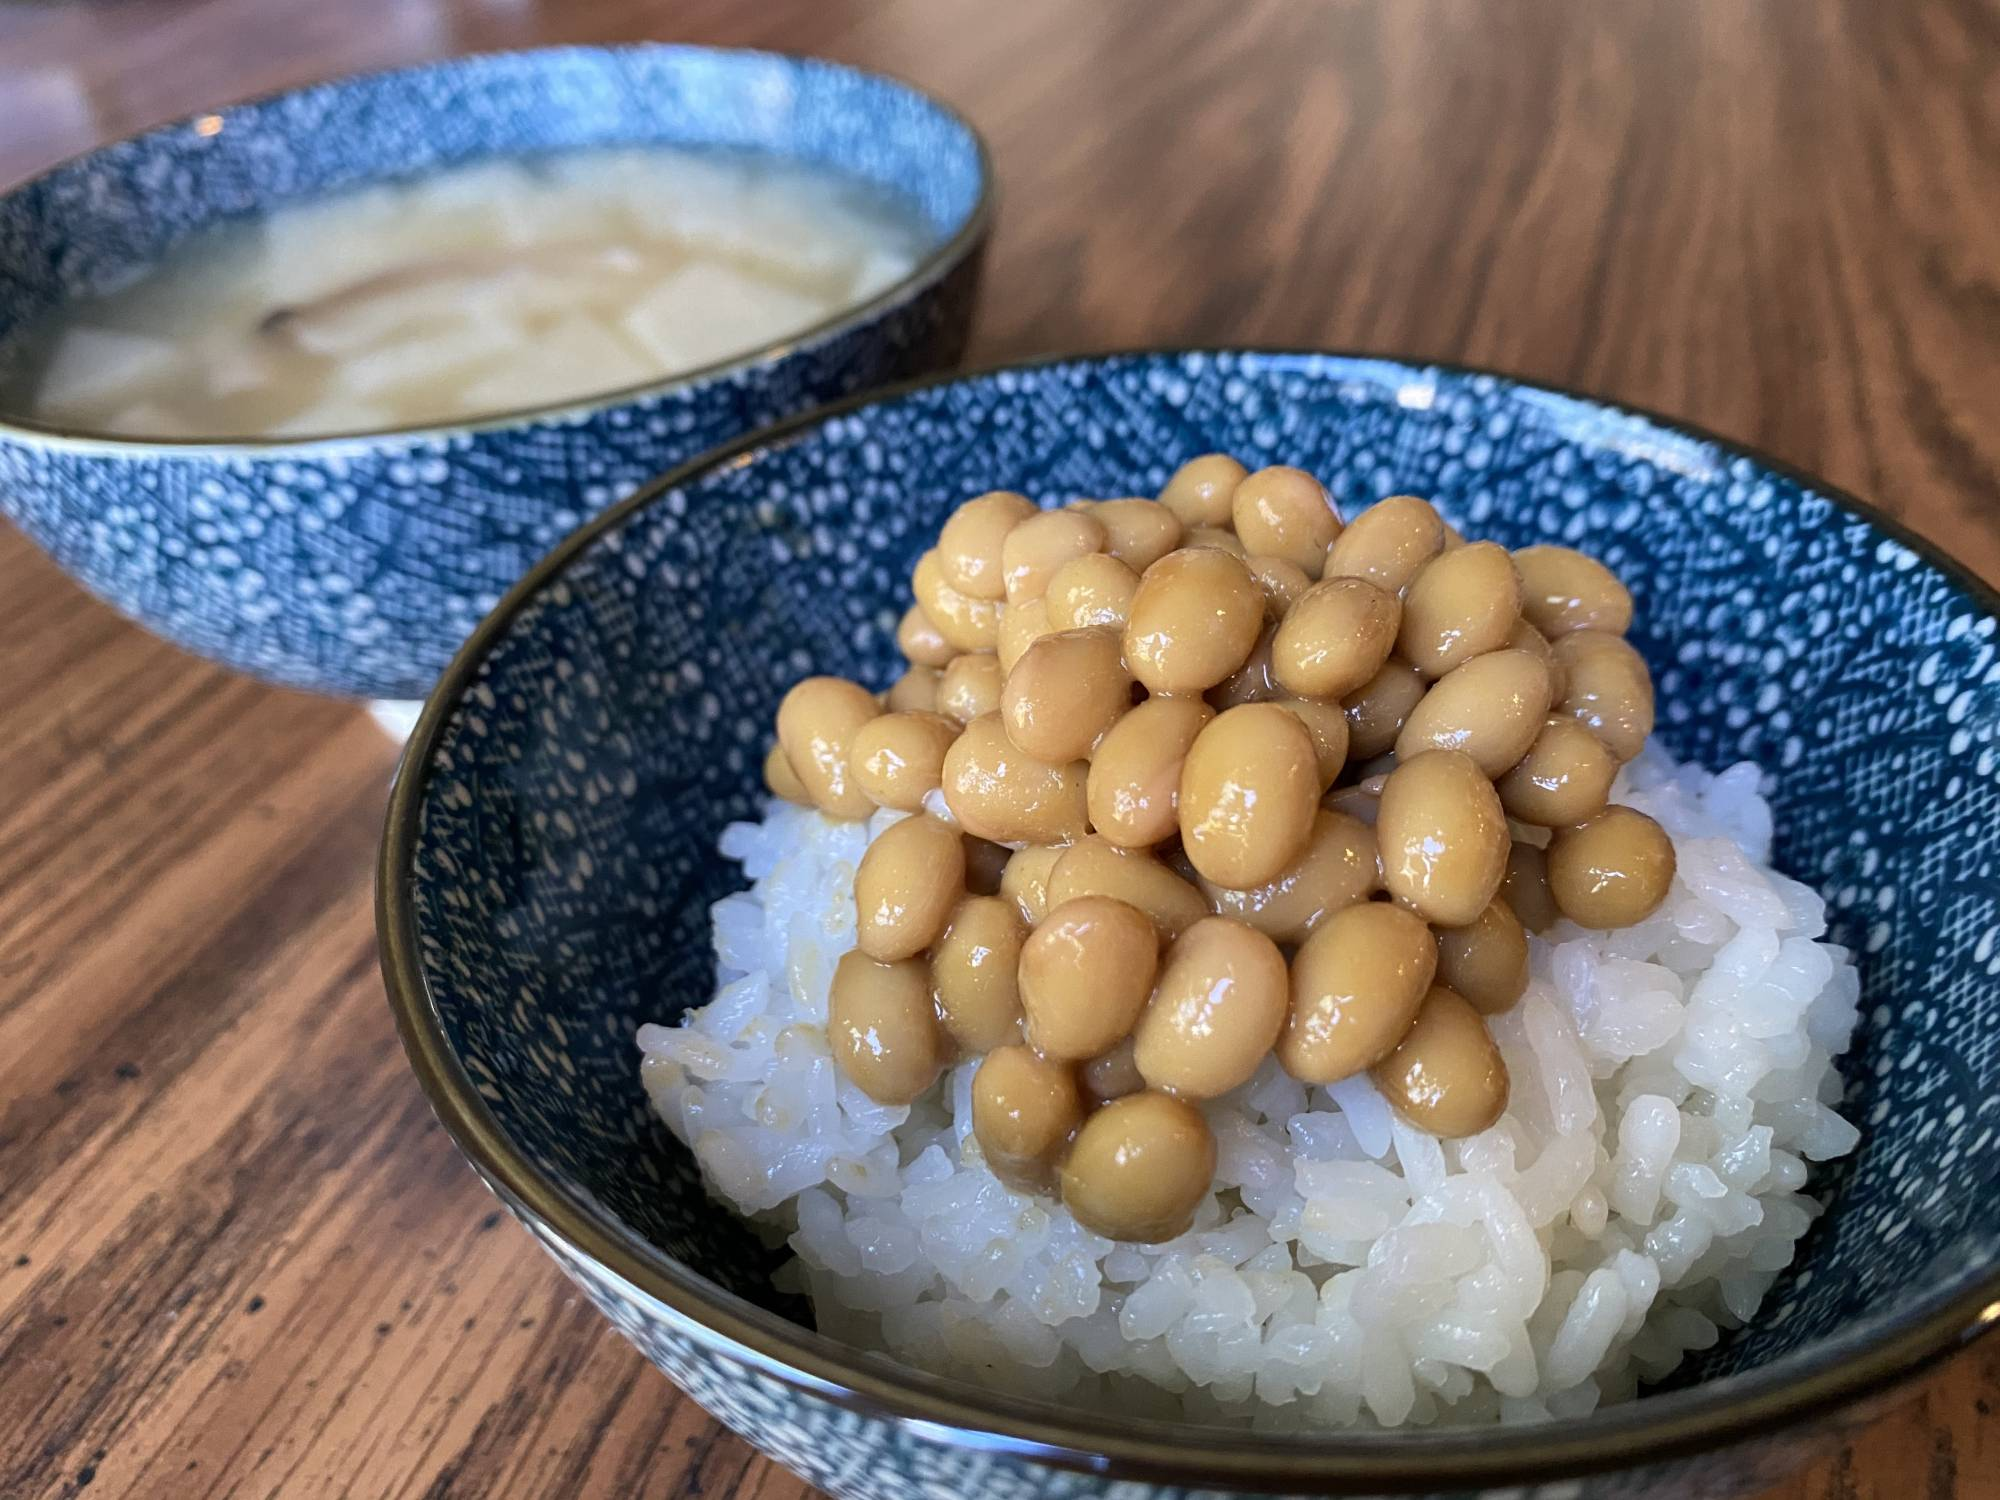 Samurai snack: The writer decided to give nattō (fermented soybeans) a try after learning the dish is known as samurai no niku (the meat of the samurai). | DANIEL MORALES